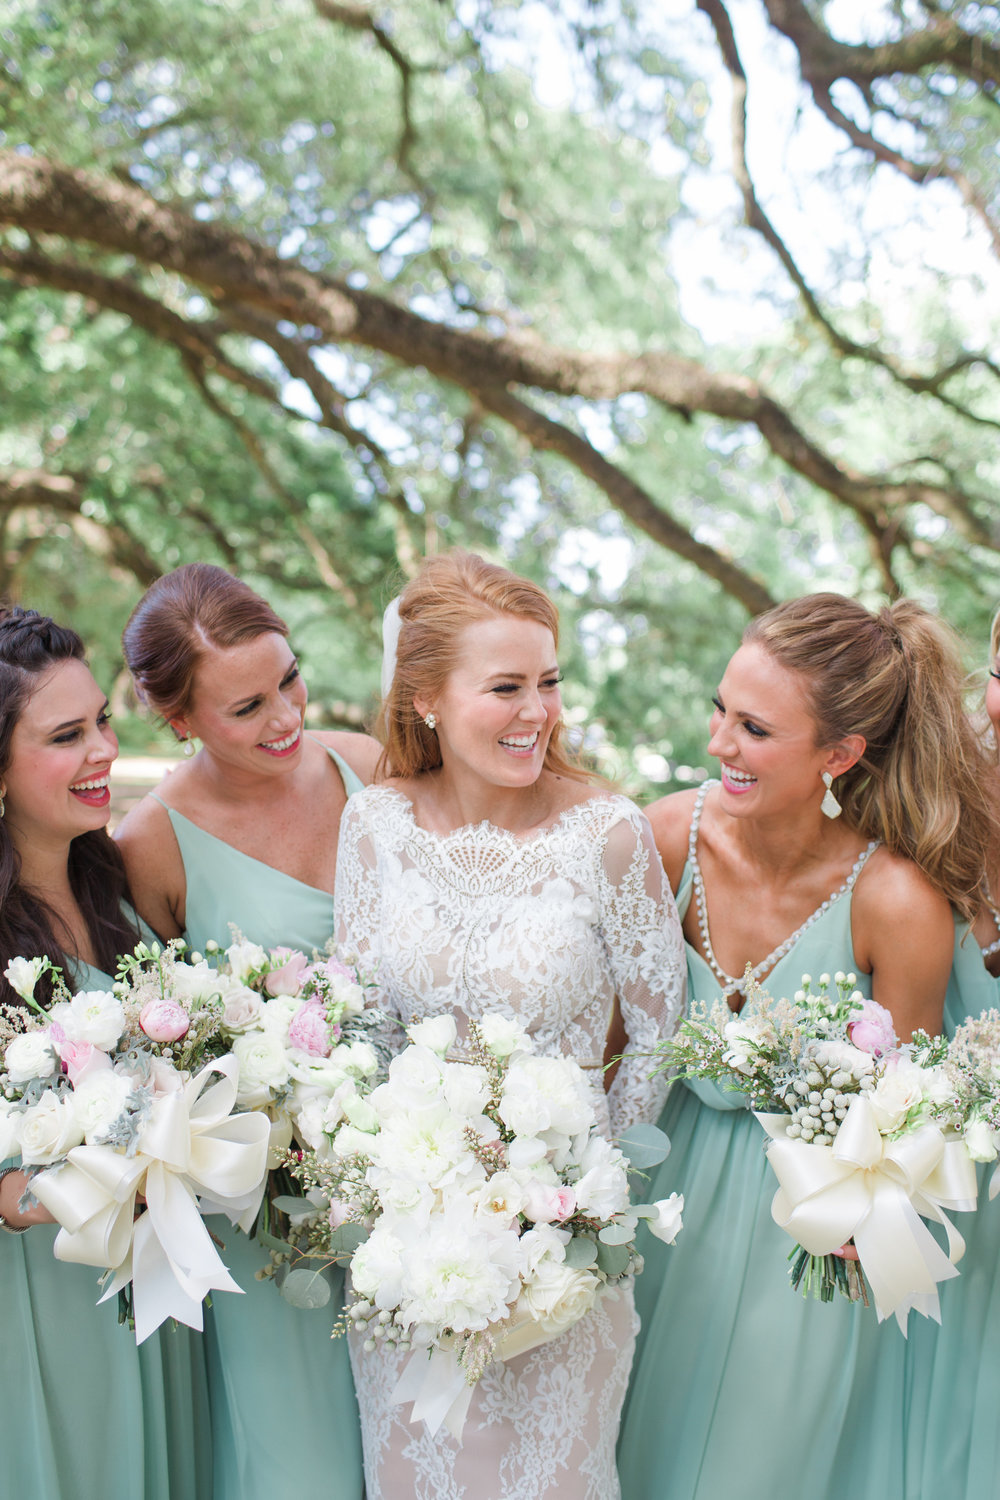 Spring Hill Wedding | Mobile Wedding Photography | Rebecca Wilcher Photography -20.jpg